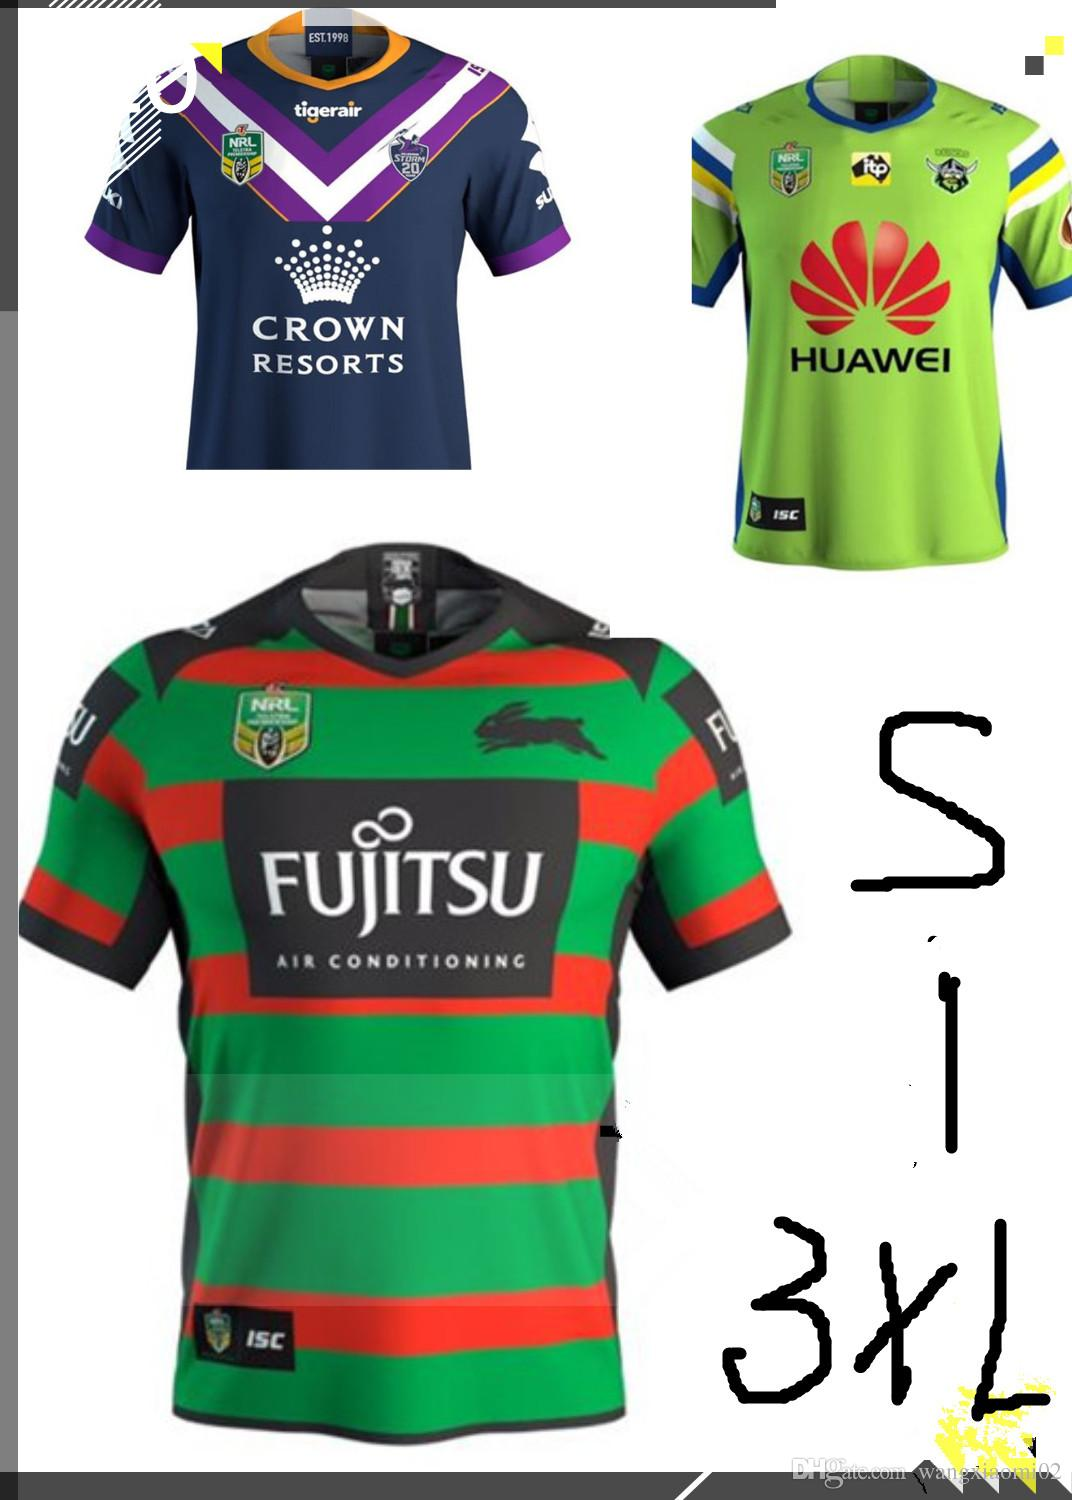 601fcd7254b 2019 2018 NRL JERSEYS SOUTH SYDNEY RABBITOHS Rugby League South Sydney  Rabbitoh New Jersey High Temperature Heat Transfer Printing Size S XXXL  From ...